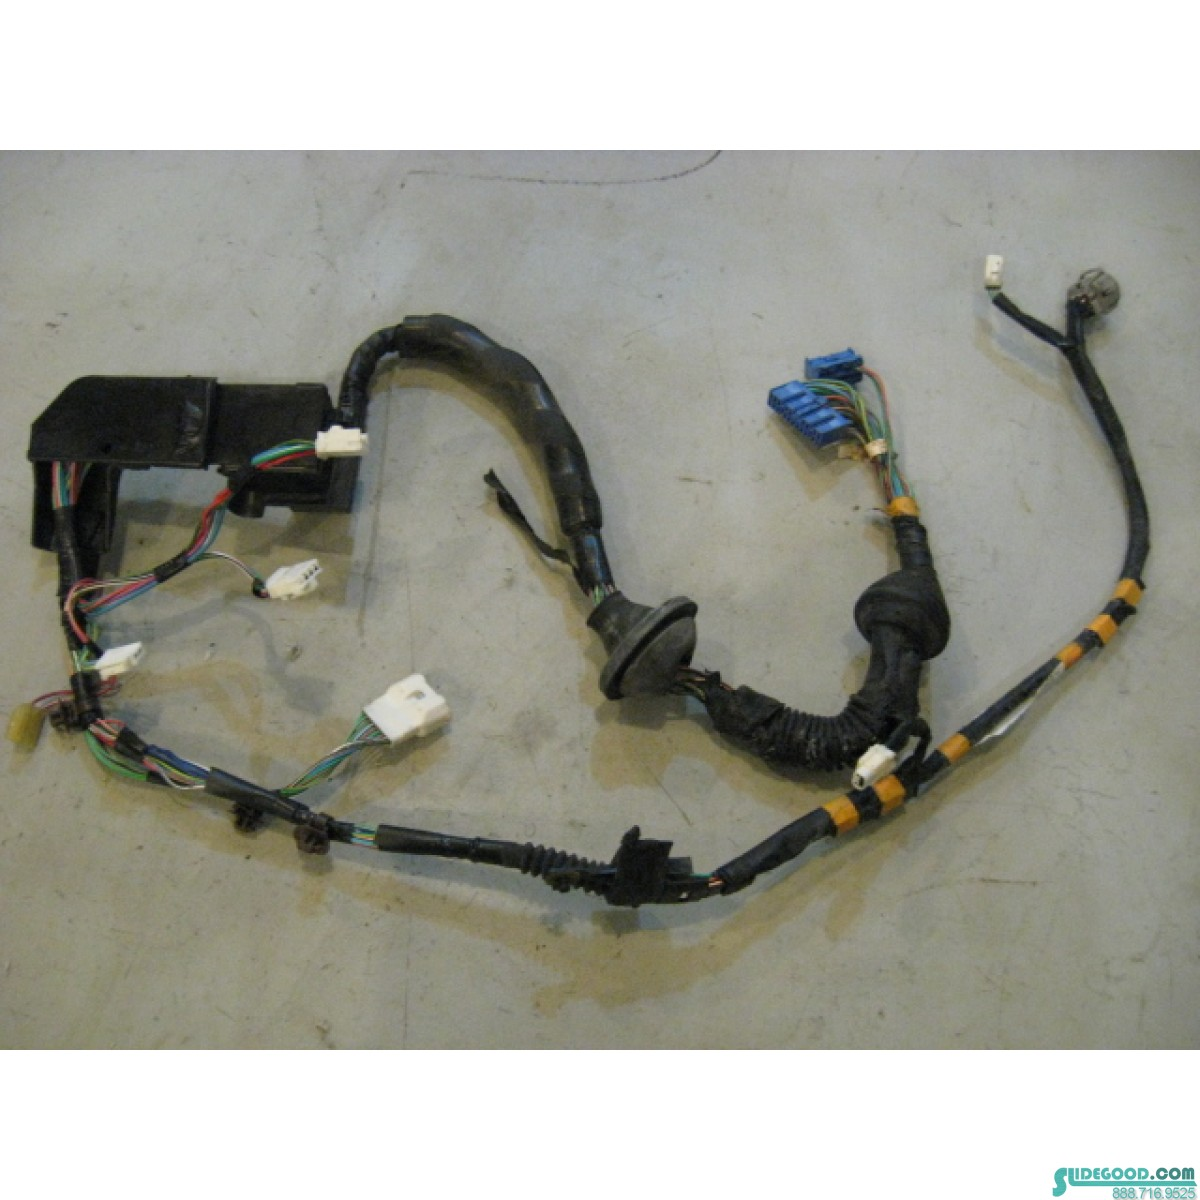 10773_01 lexus sc400 rh passenger door wiring harness 82151 24231 r10773 1992 Lexus SC400 at mifinder.co